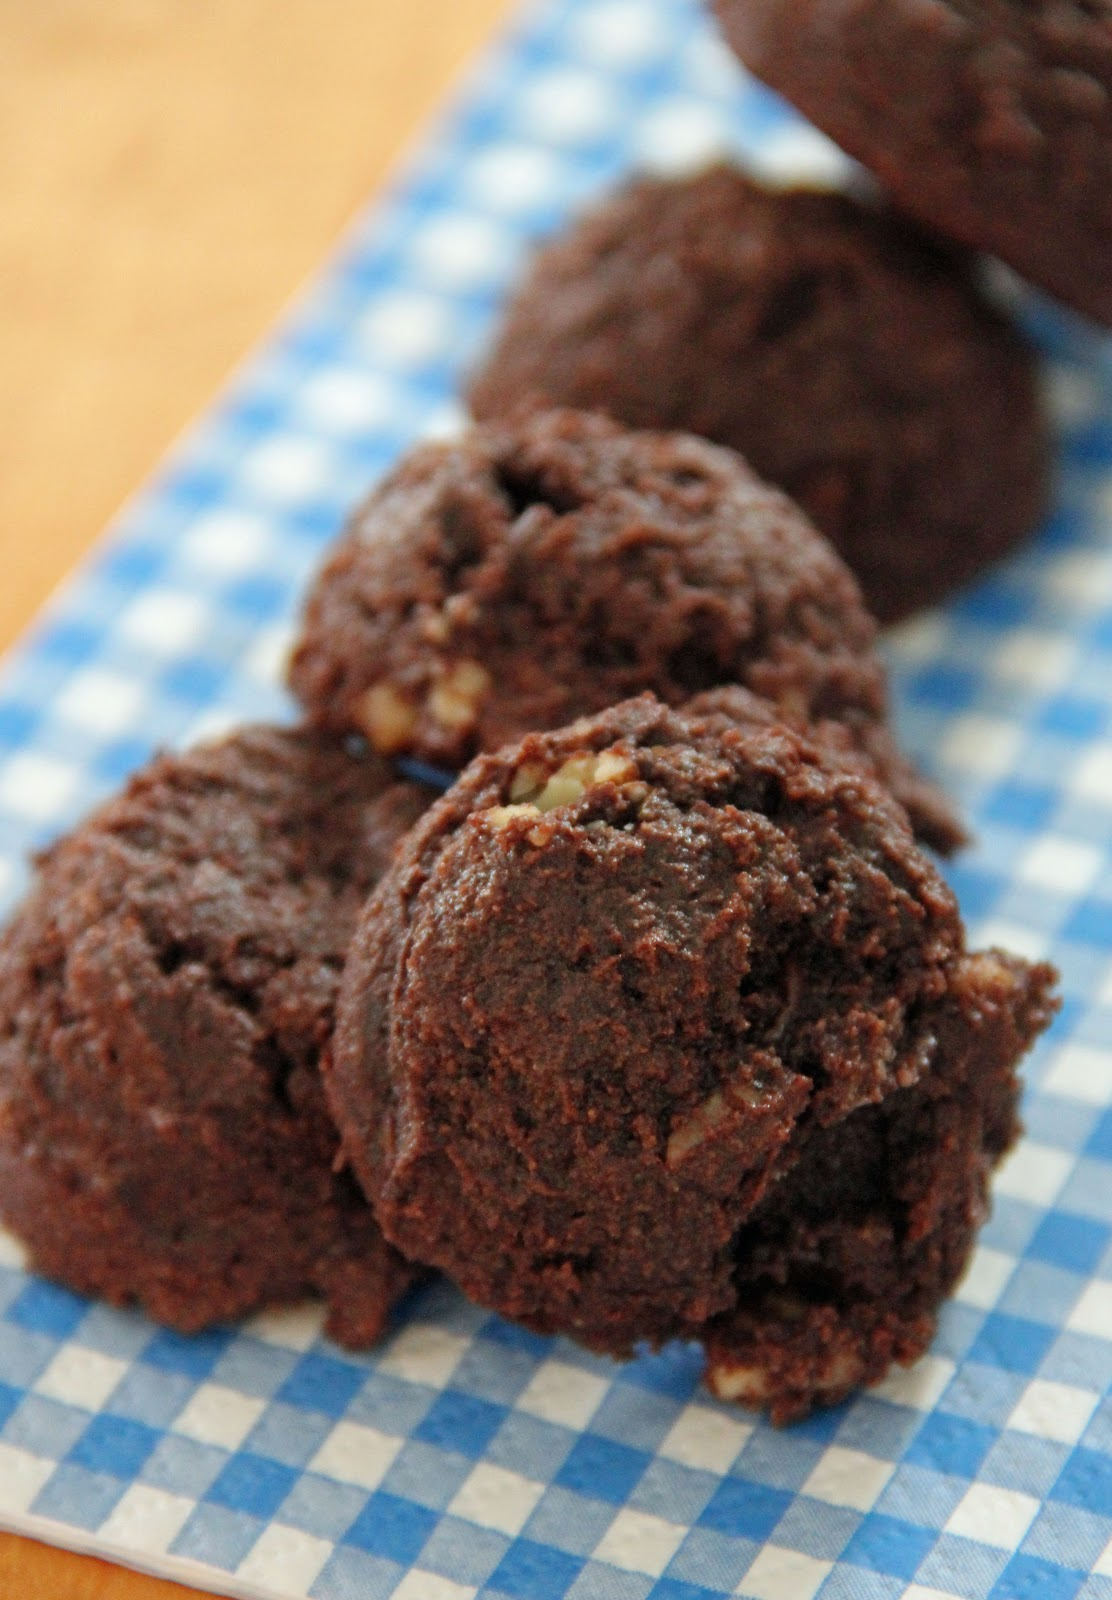 Jo and Sue: Coconut Flour Double Chocolate Cookies